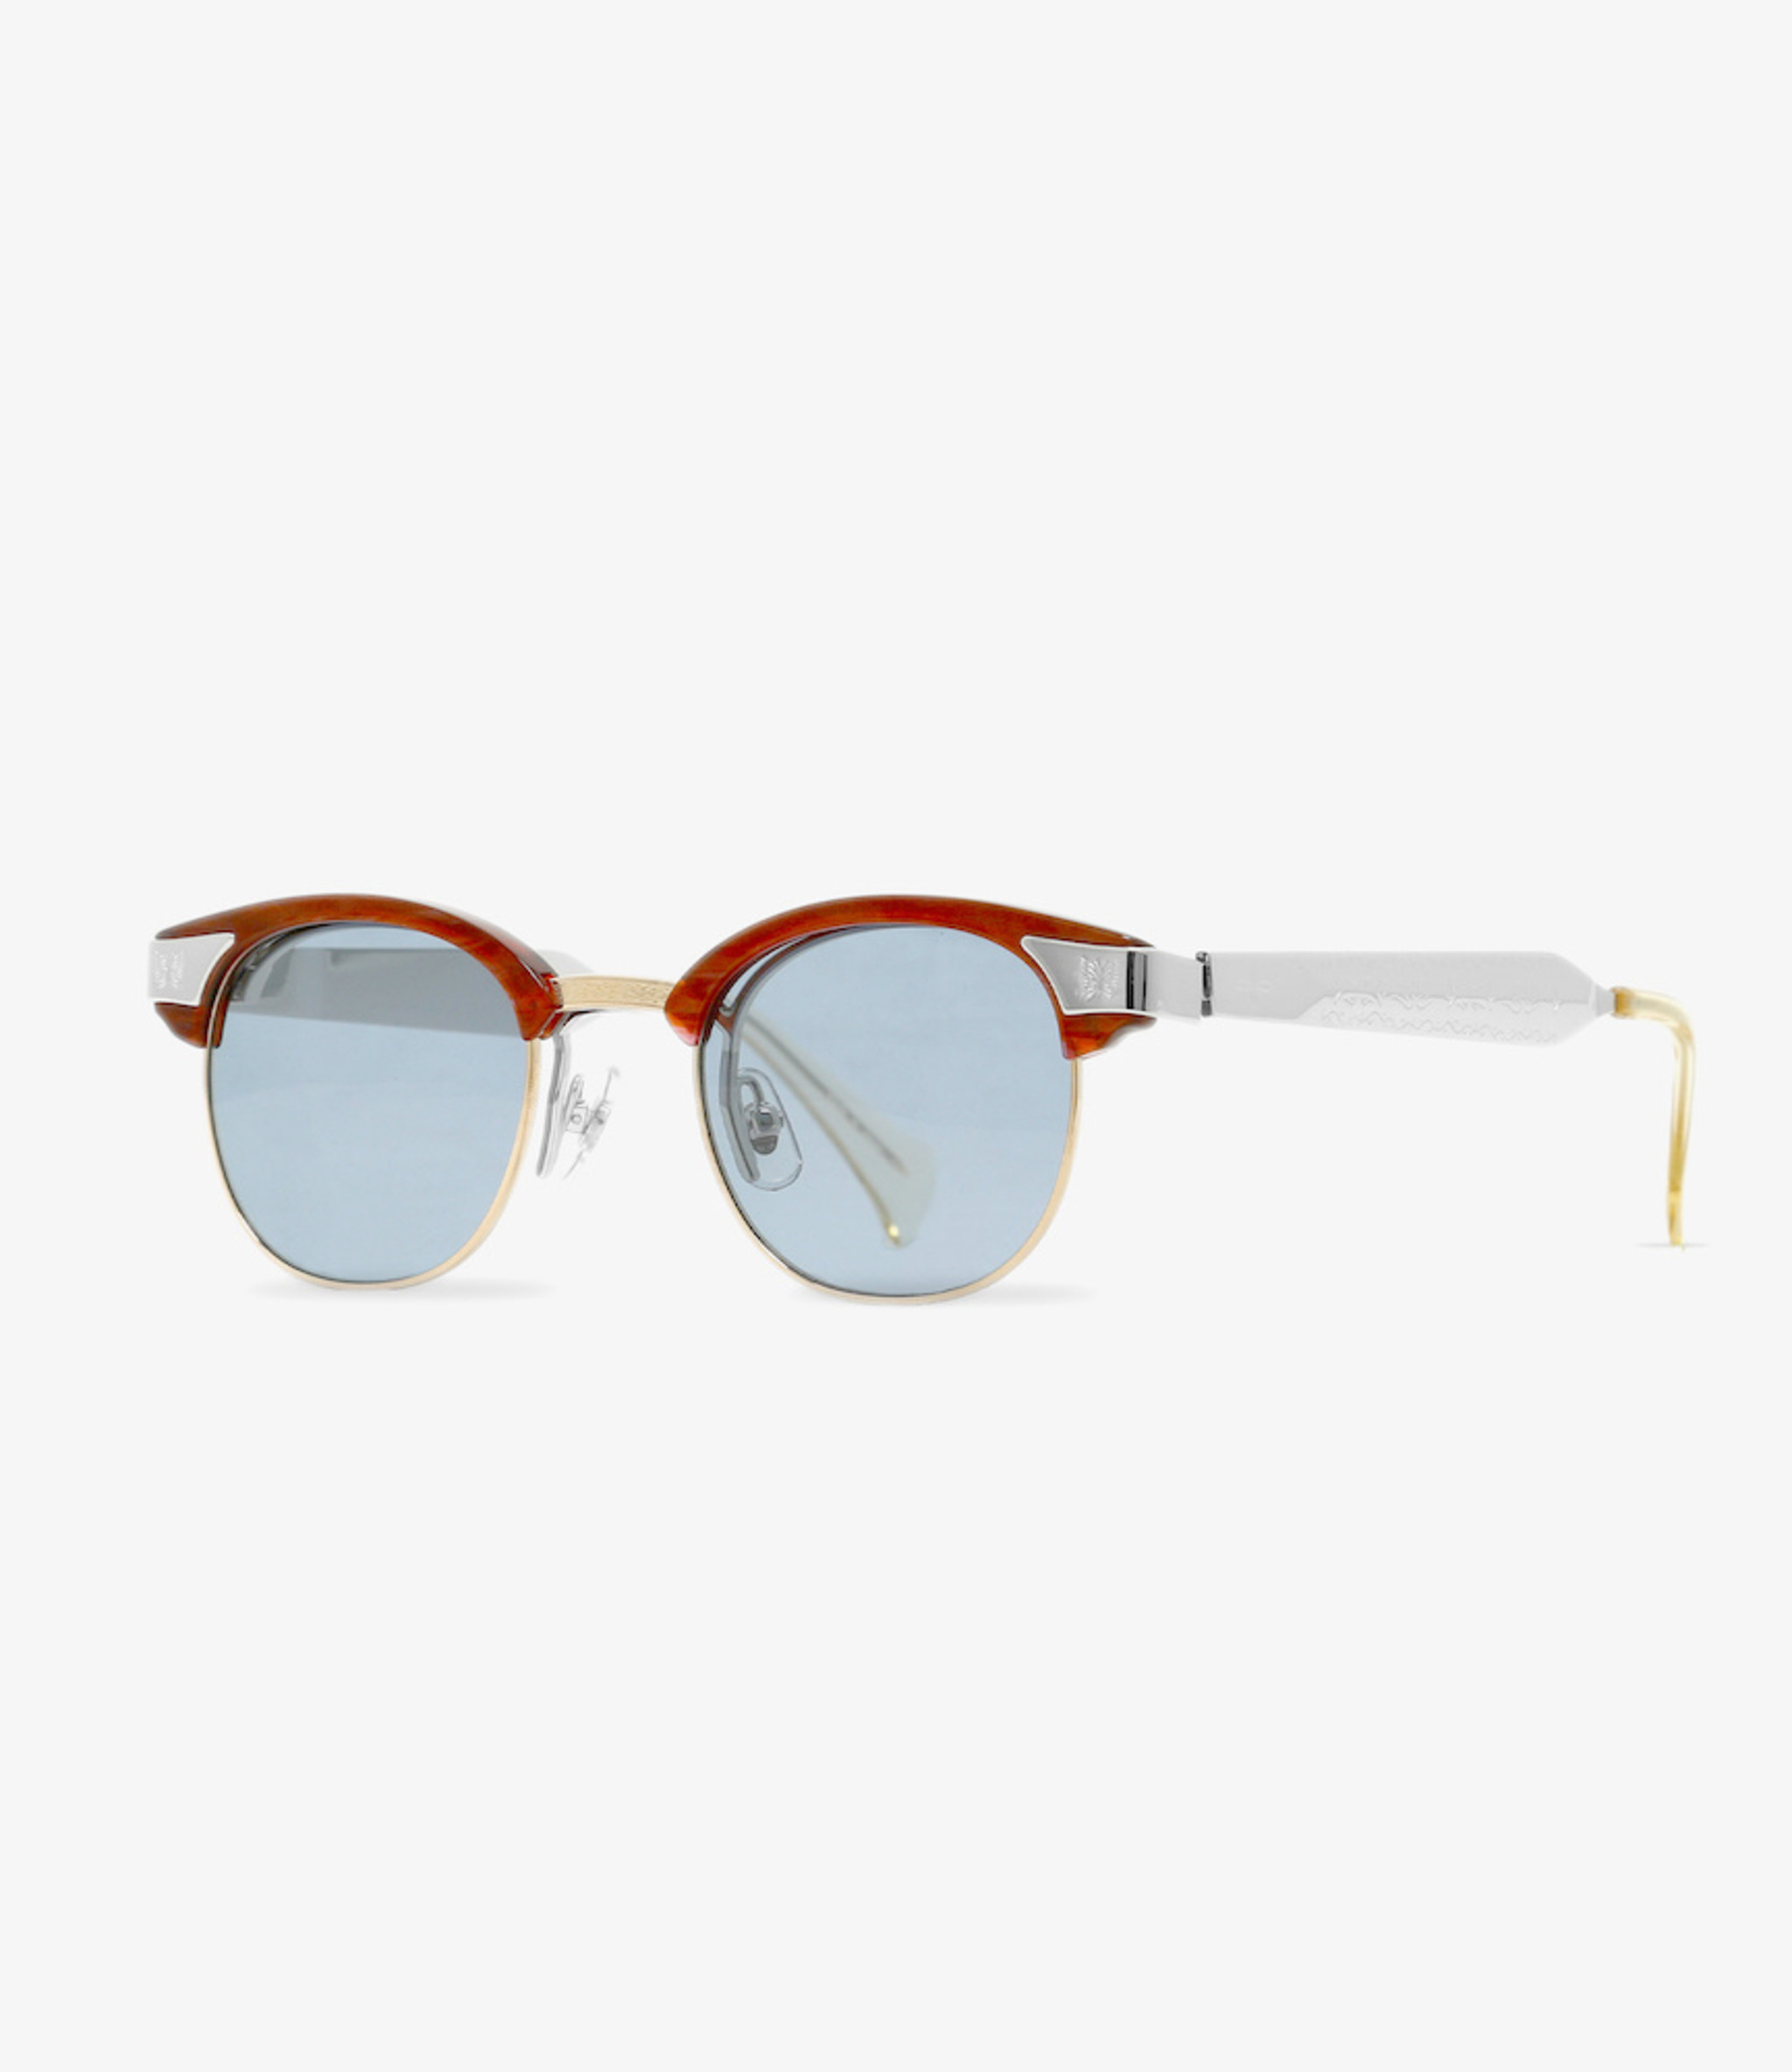 Needles Needles x MATSUDA / Papillon Glasses - James Sunglasses - Black